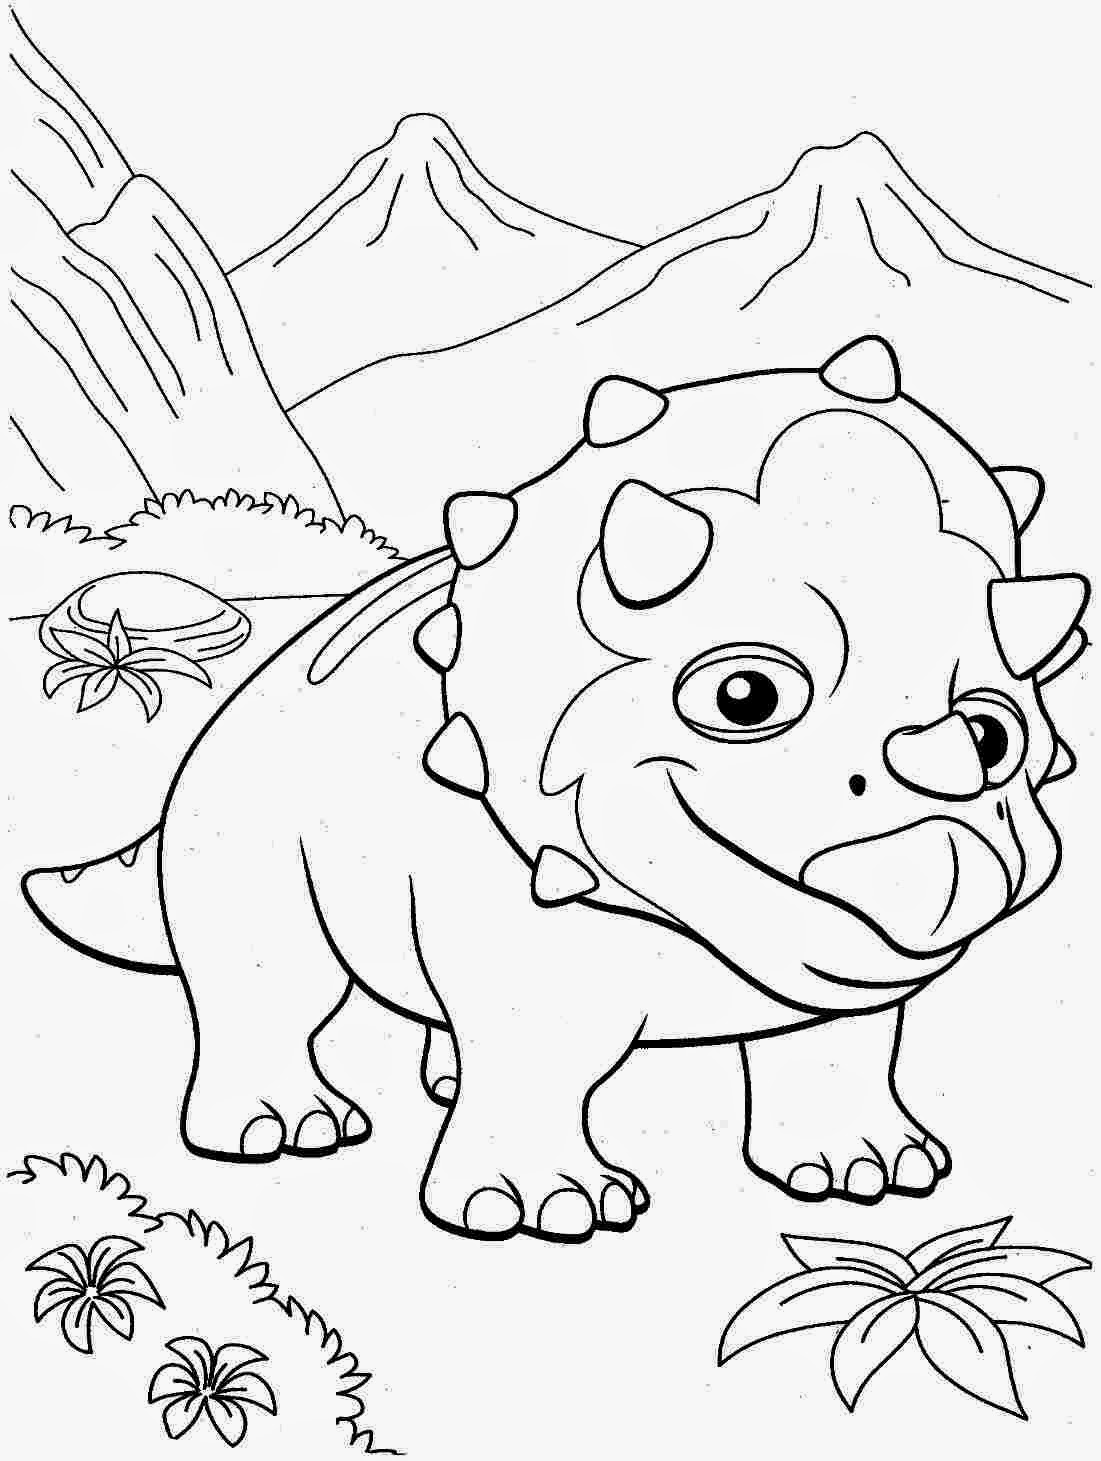 dinosaur print out coloring pages the good dinosaur arlo and spot coloring pages kids out pages print dinosaur coloring